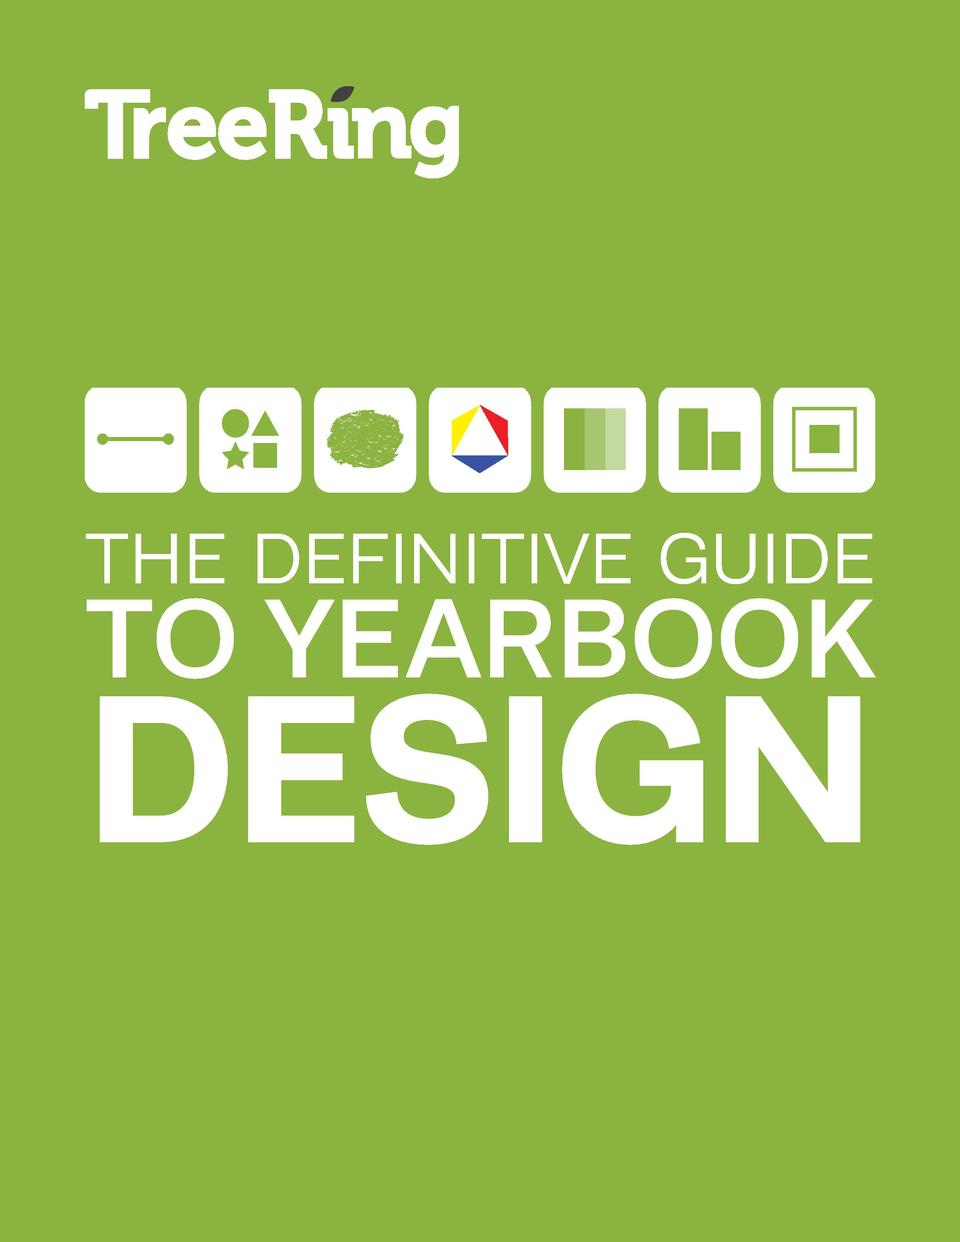 THE DEFINITIVE GUIDE  TO YEARBOOK  DESIGN